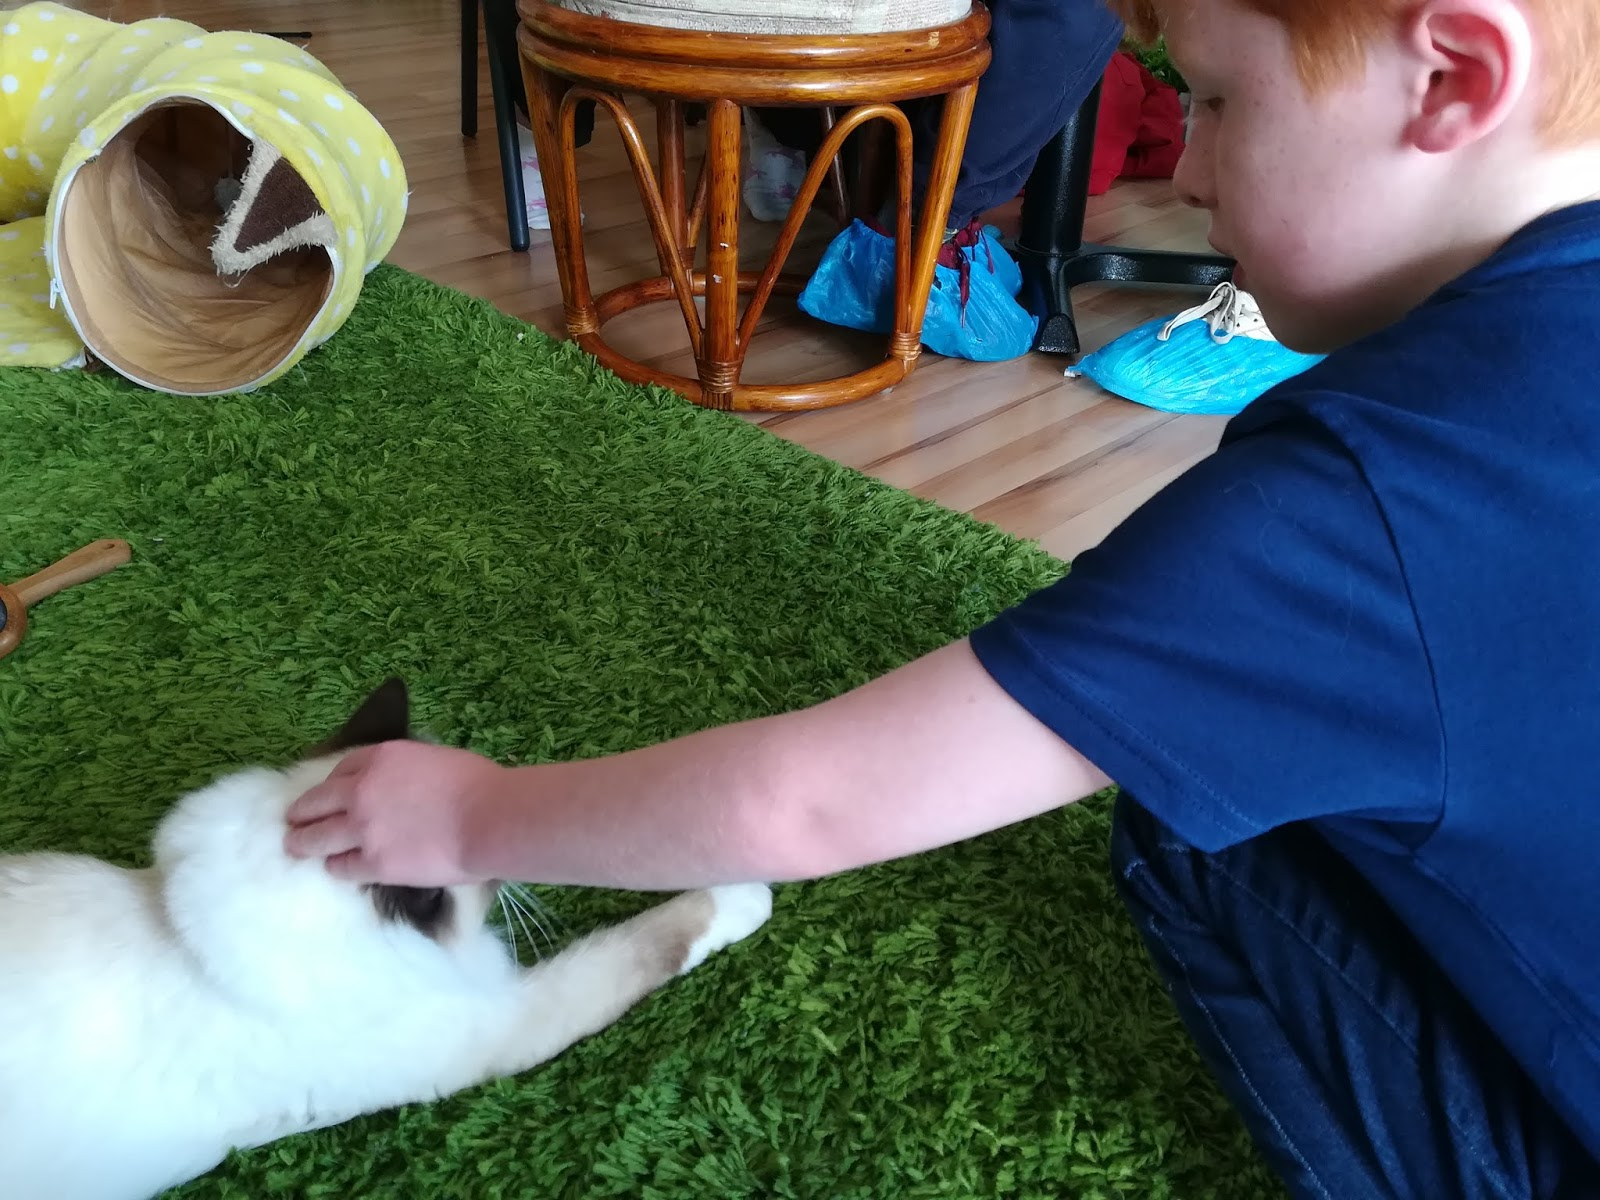 CatPawCino | Visiting a Cat Café in Newcastle with Kids - stroking a cat